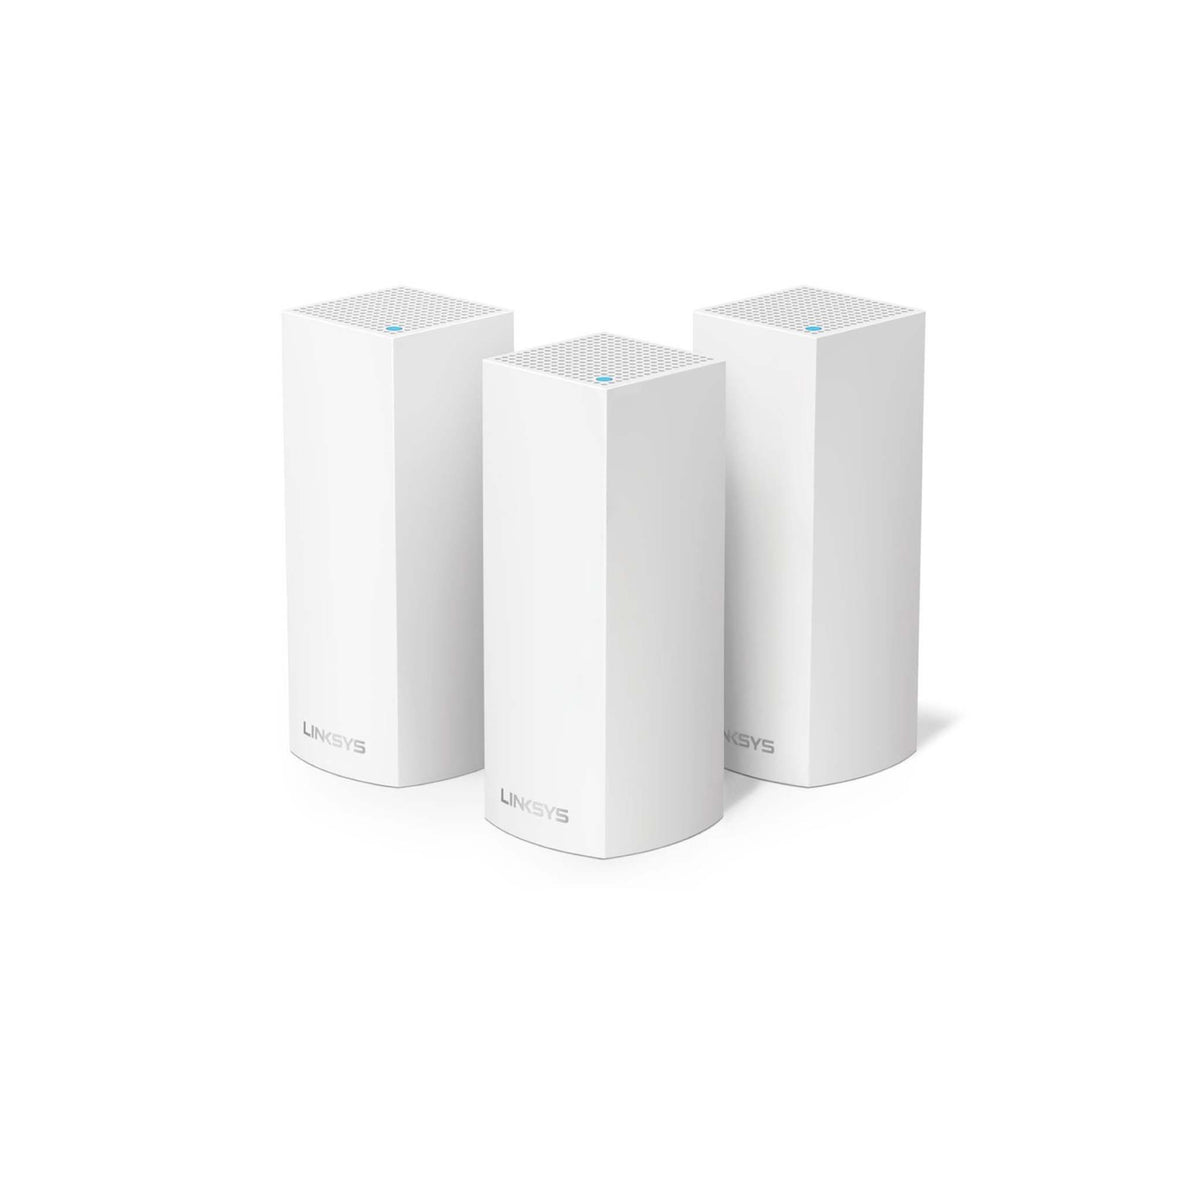 Linksys Velop Intelligent Mesh WiFi System Tri-Band 3-Pack (AC6600)